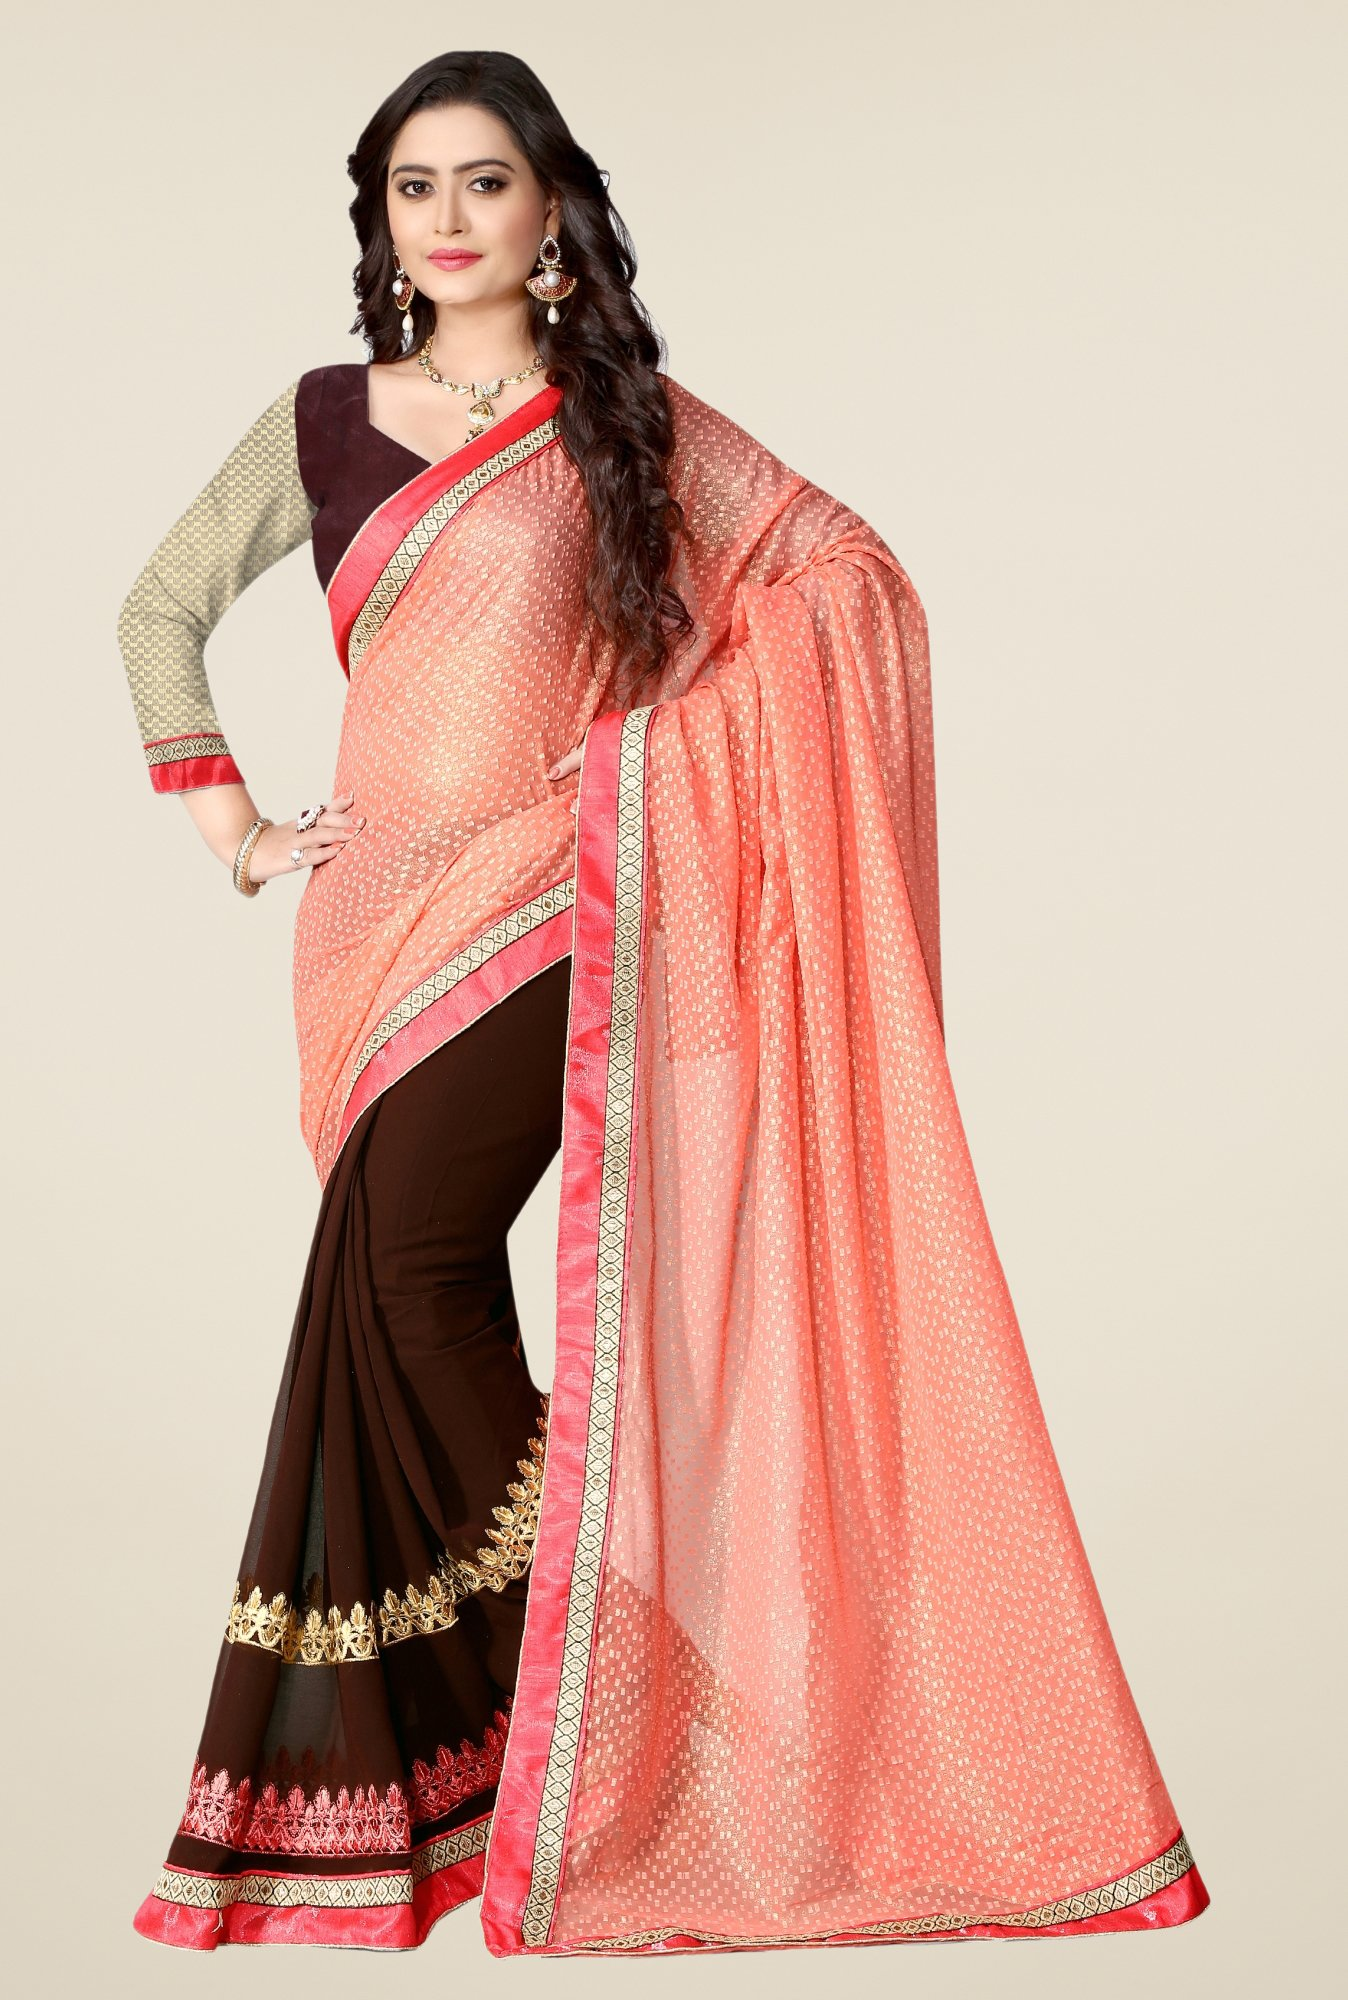 Triveni Brown Embroidered Jacquard Georgette Saree